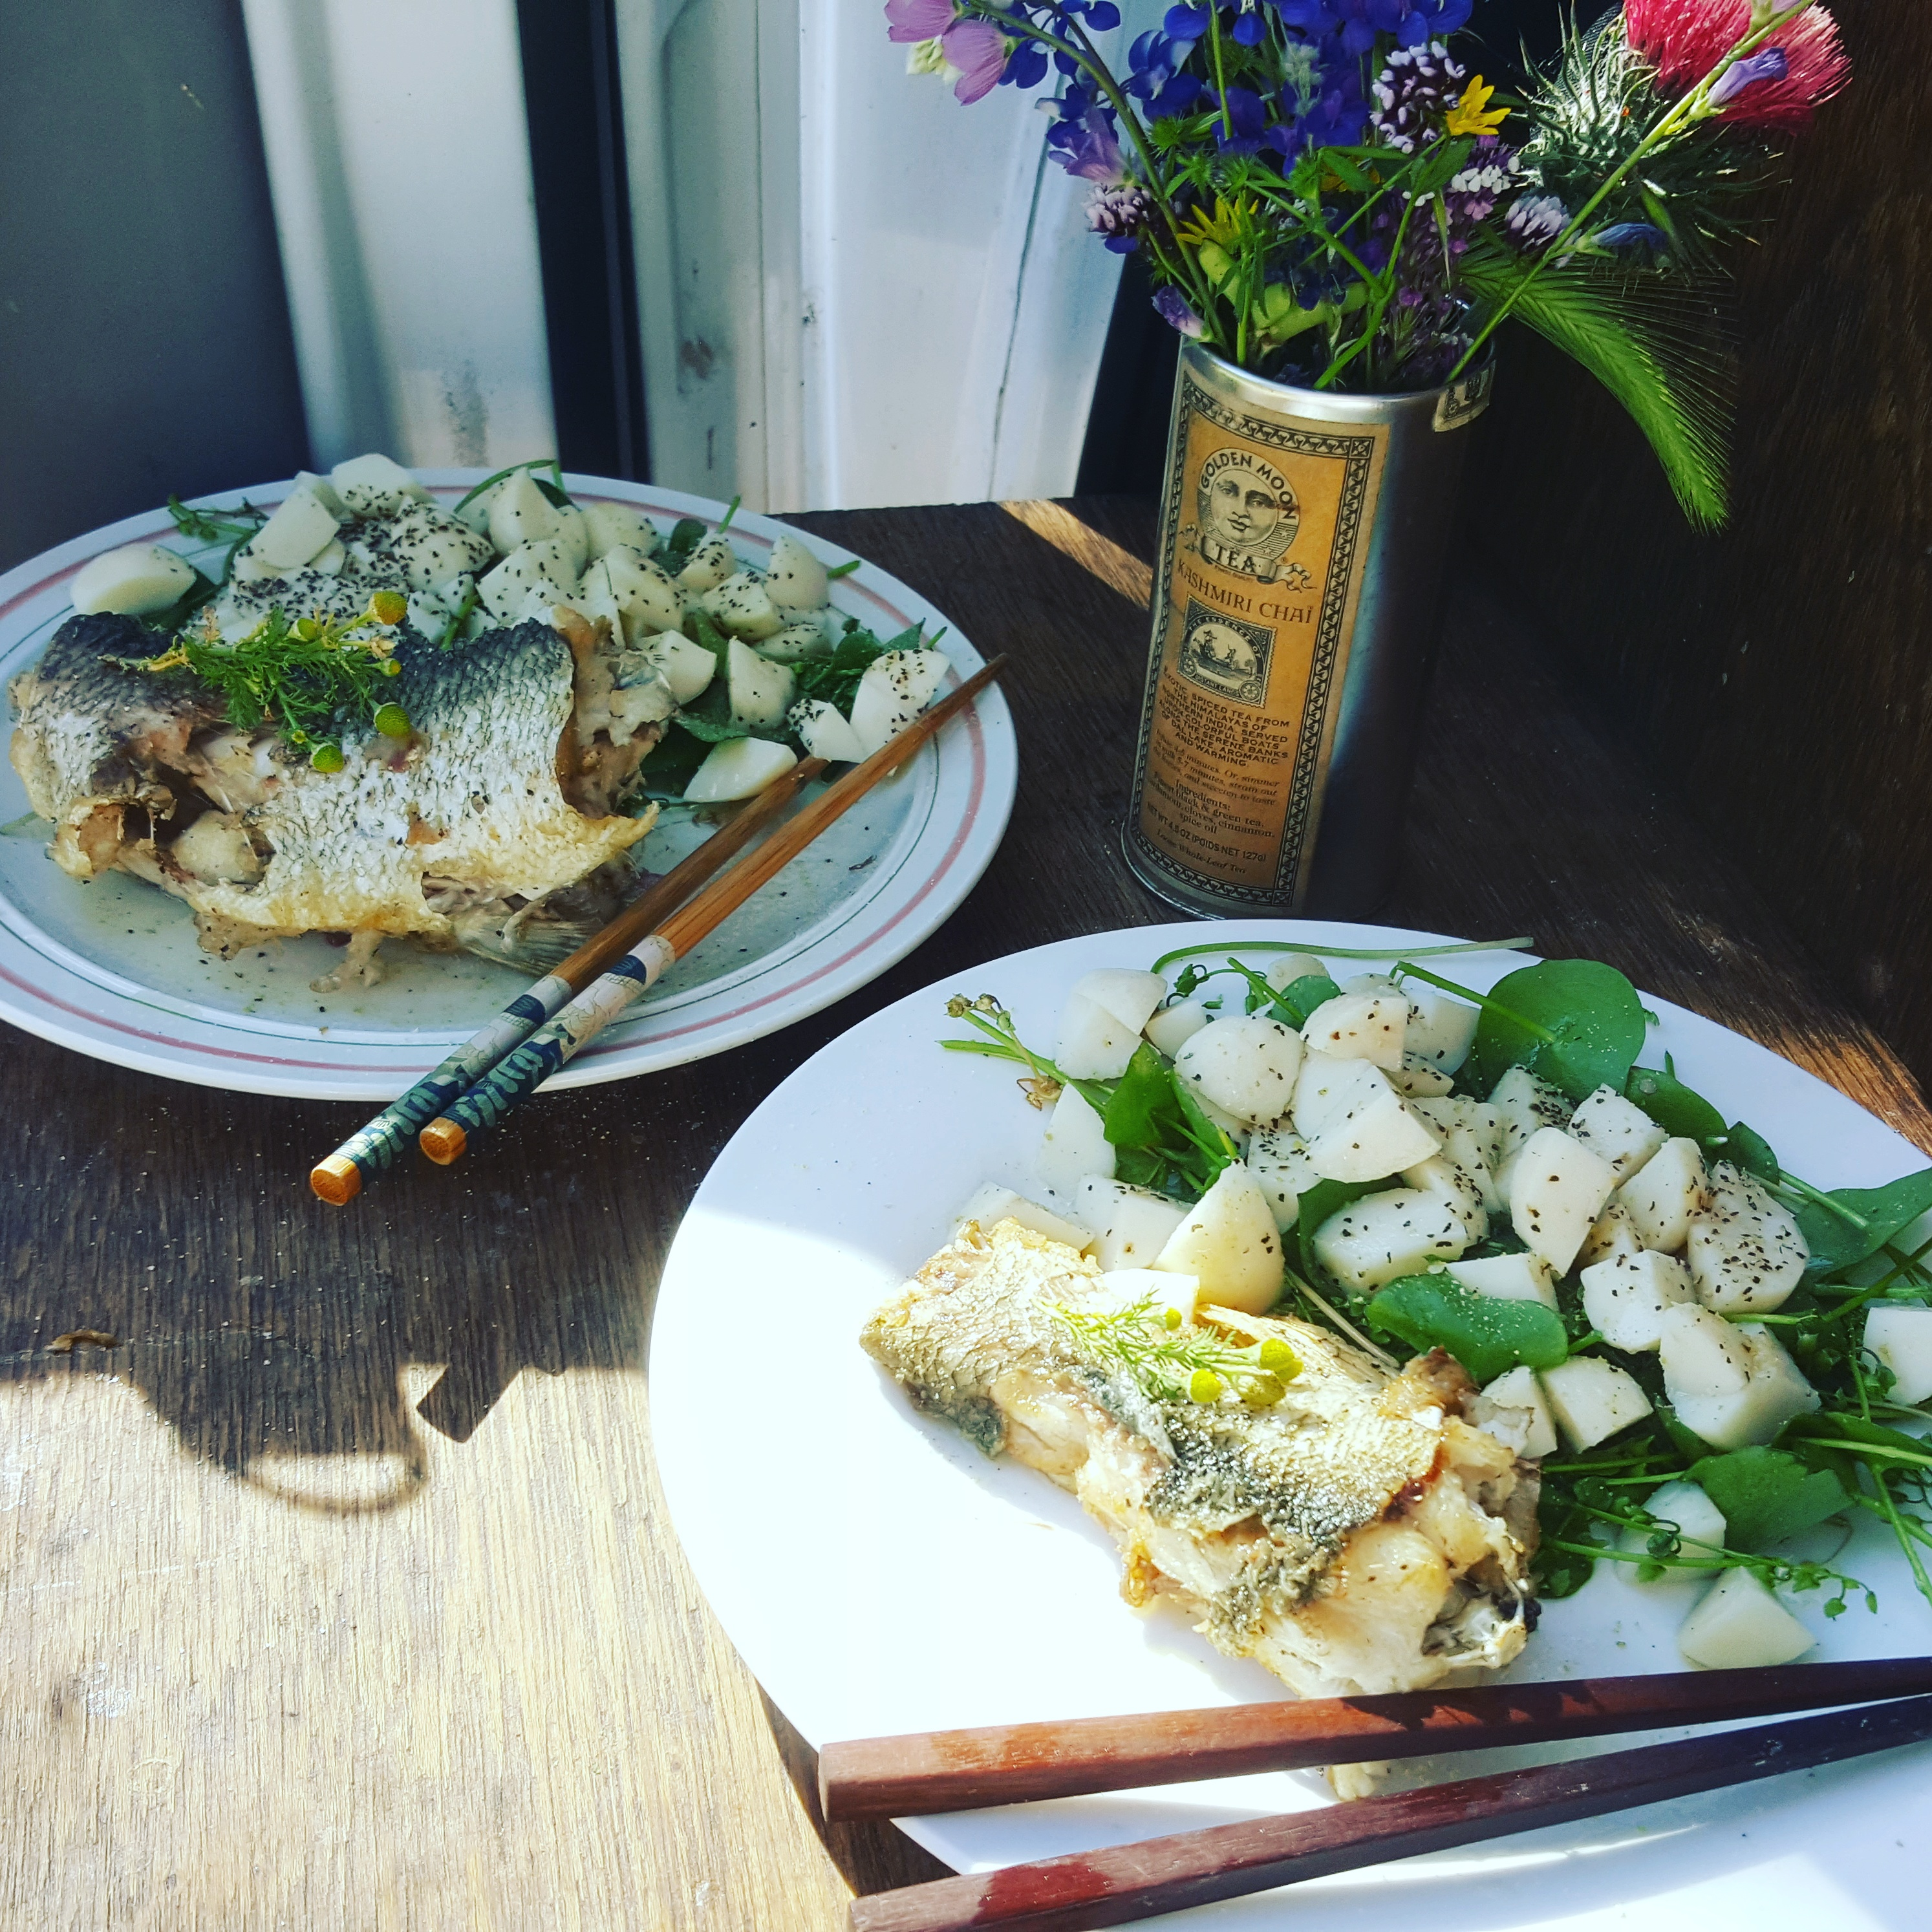 Rainbow Trout and miners lettuce salad